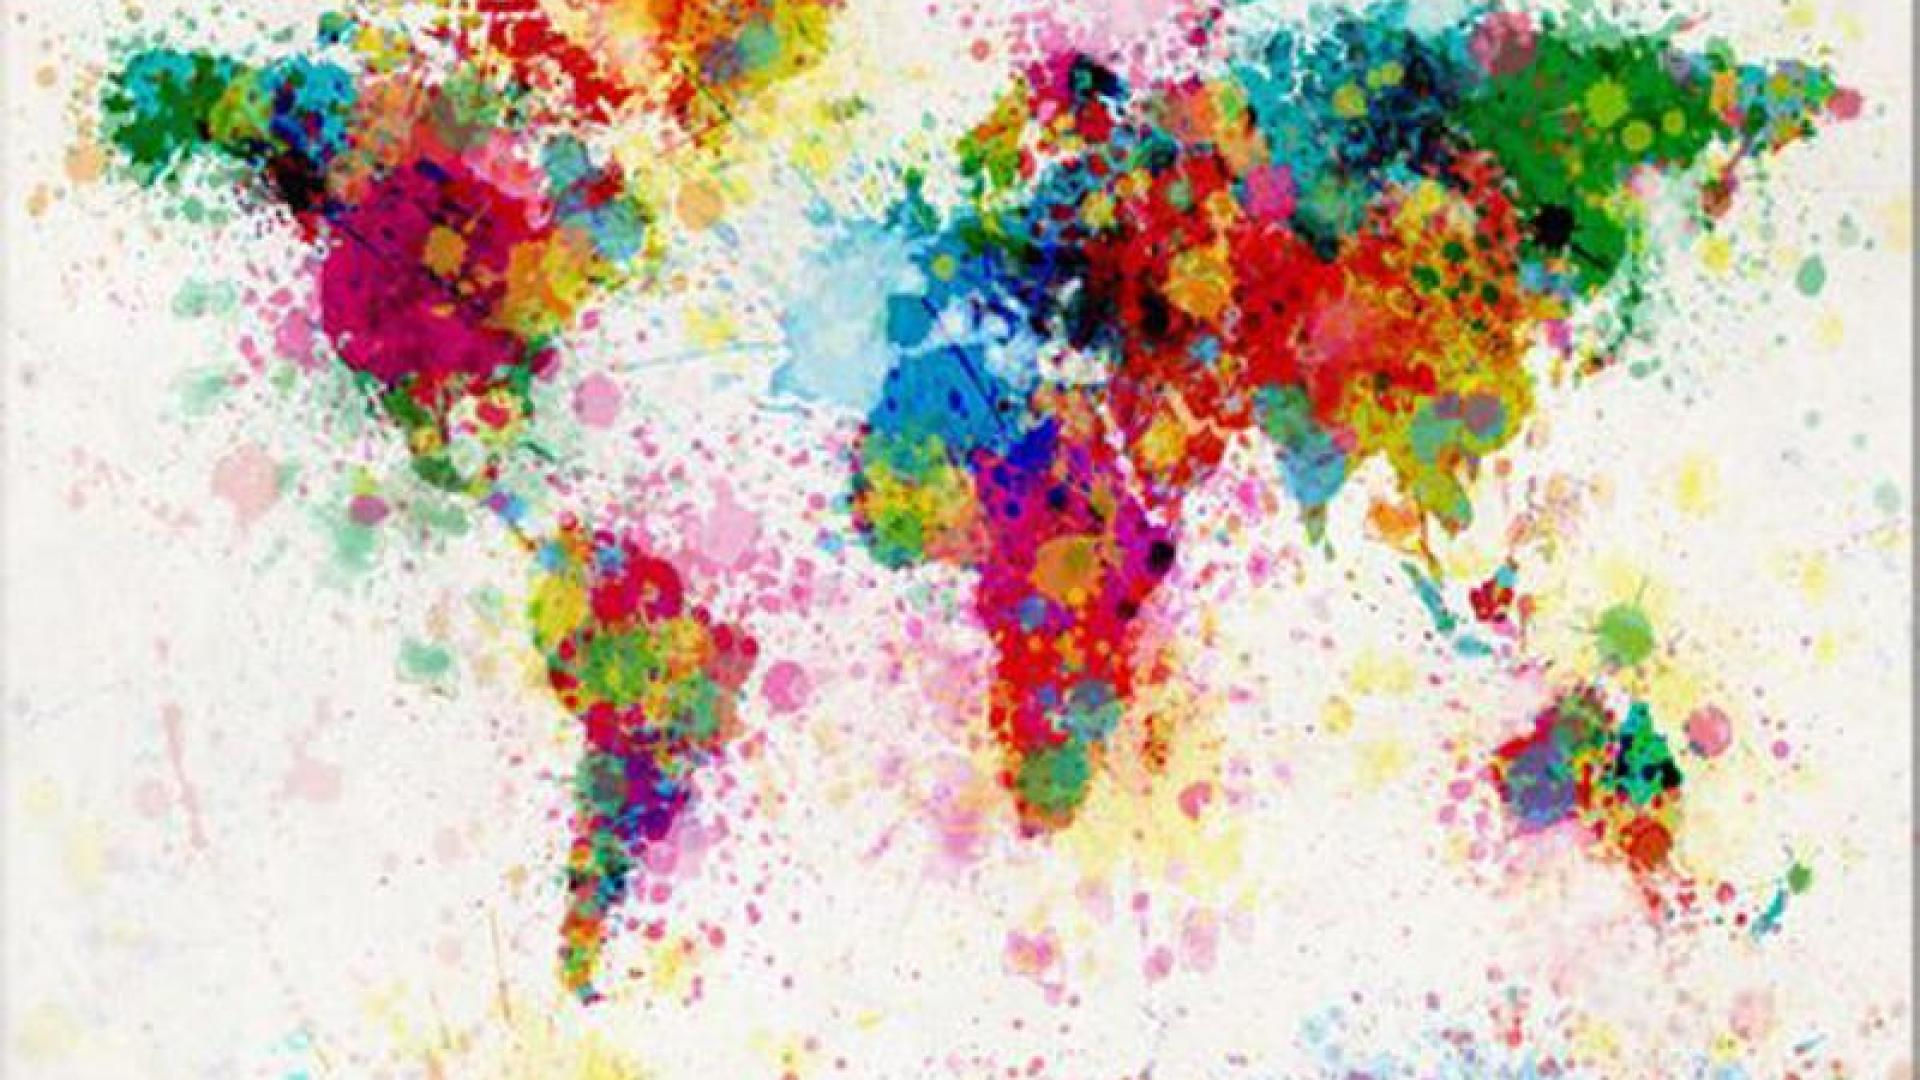 Animated Colourful Wallpaper